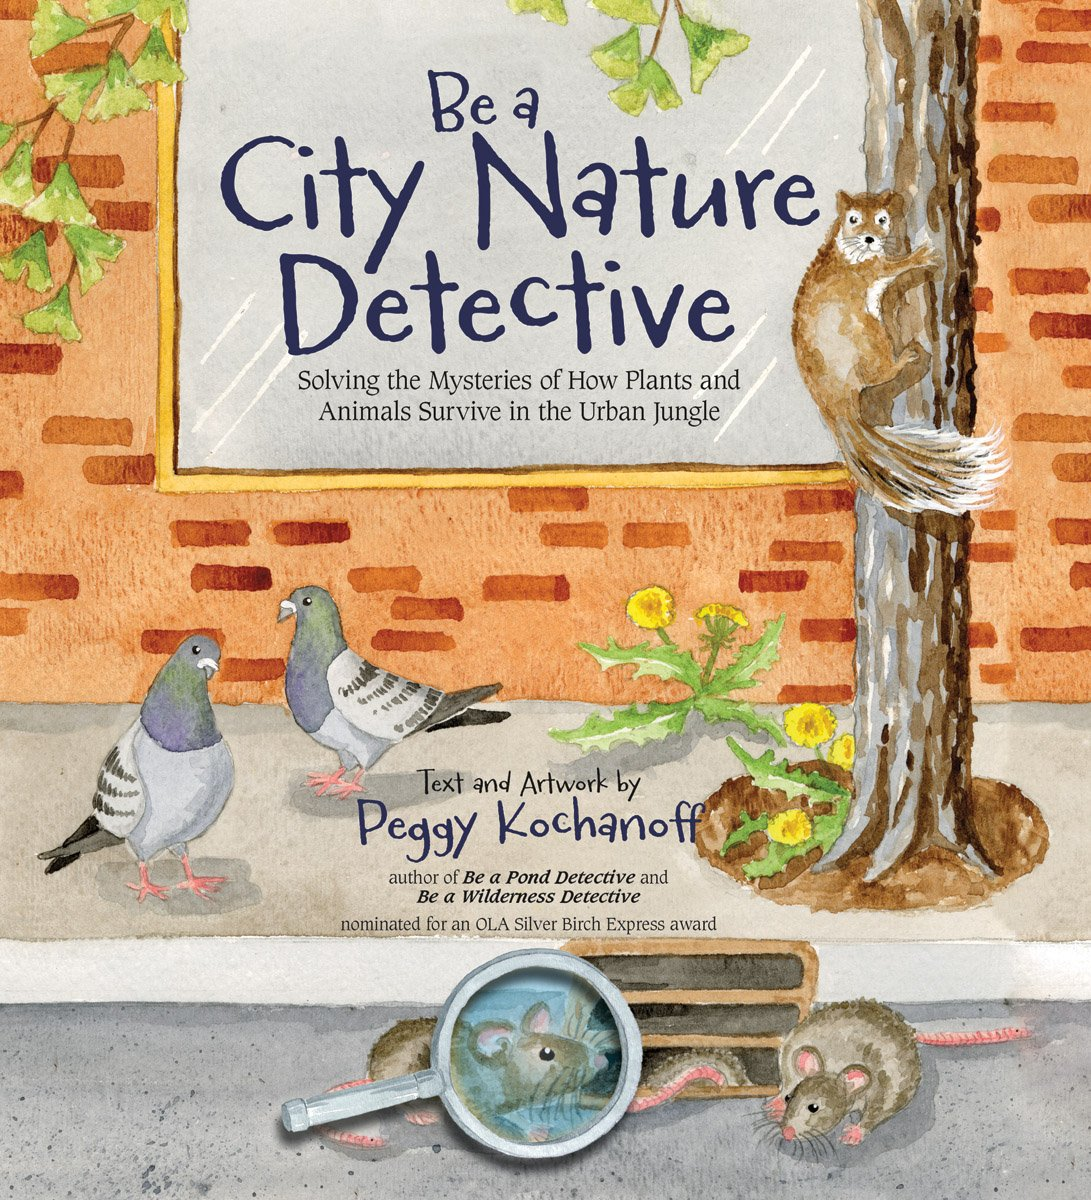 Be a City Nature Detective: Solving the Mysteries of How Plants and Animals Survive in the Urban Jungle (Wilderness Detective Series)